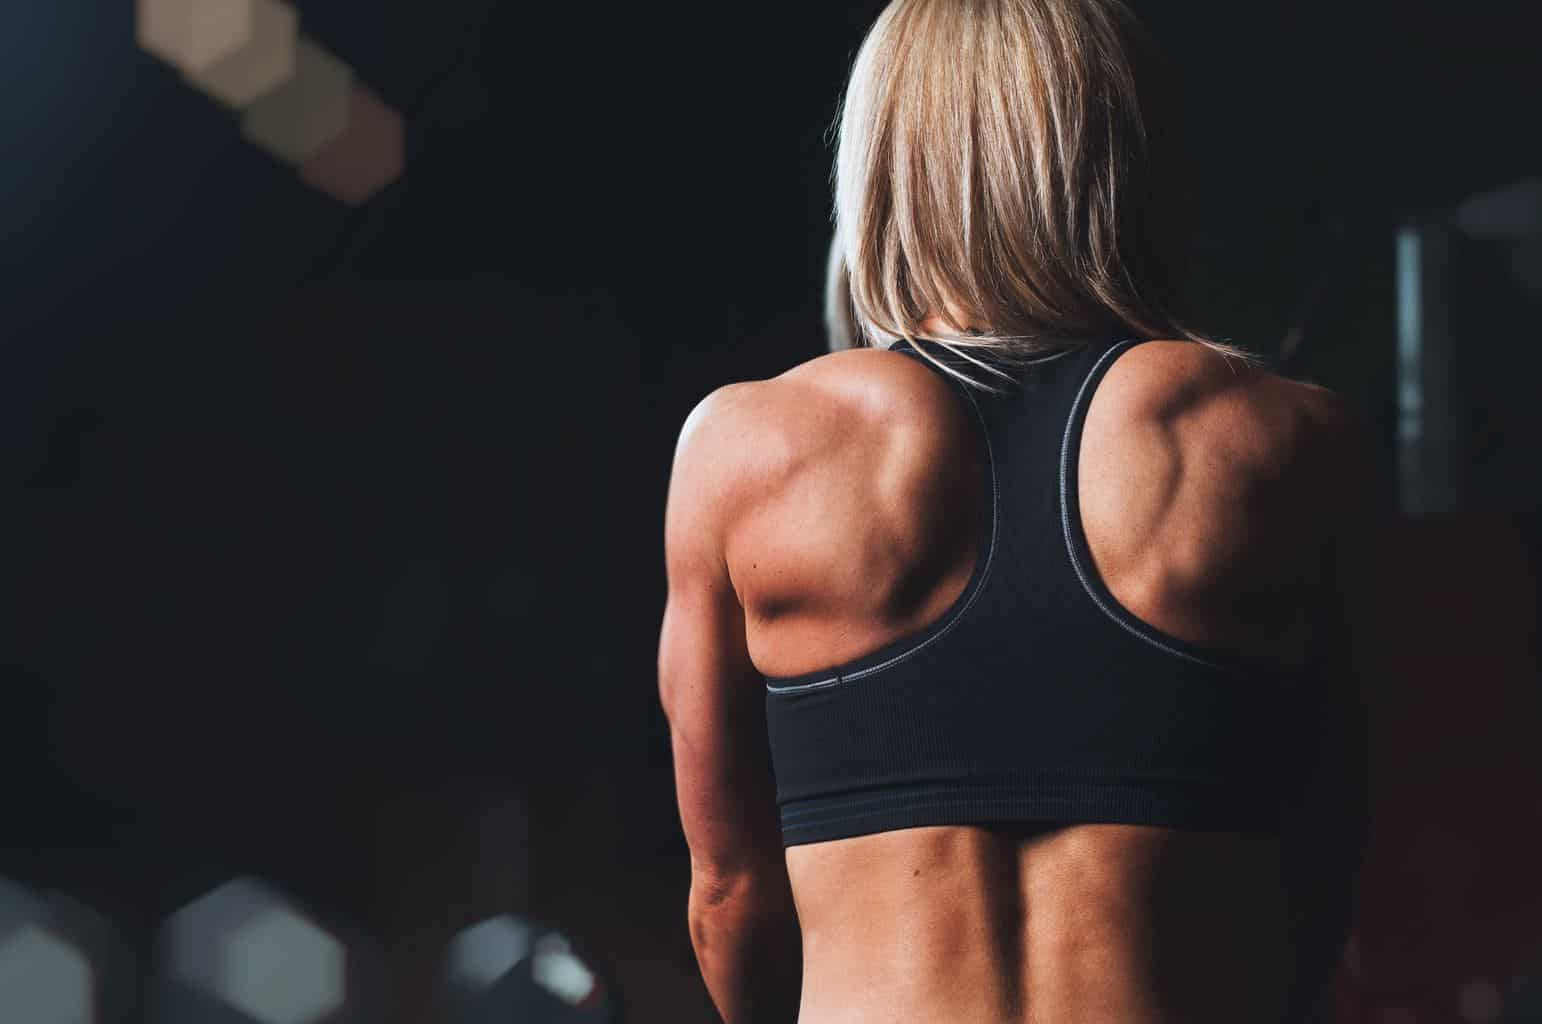 image of a muscular woman from the back